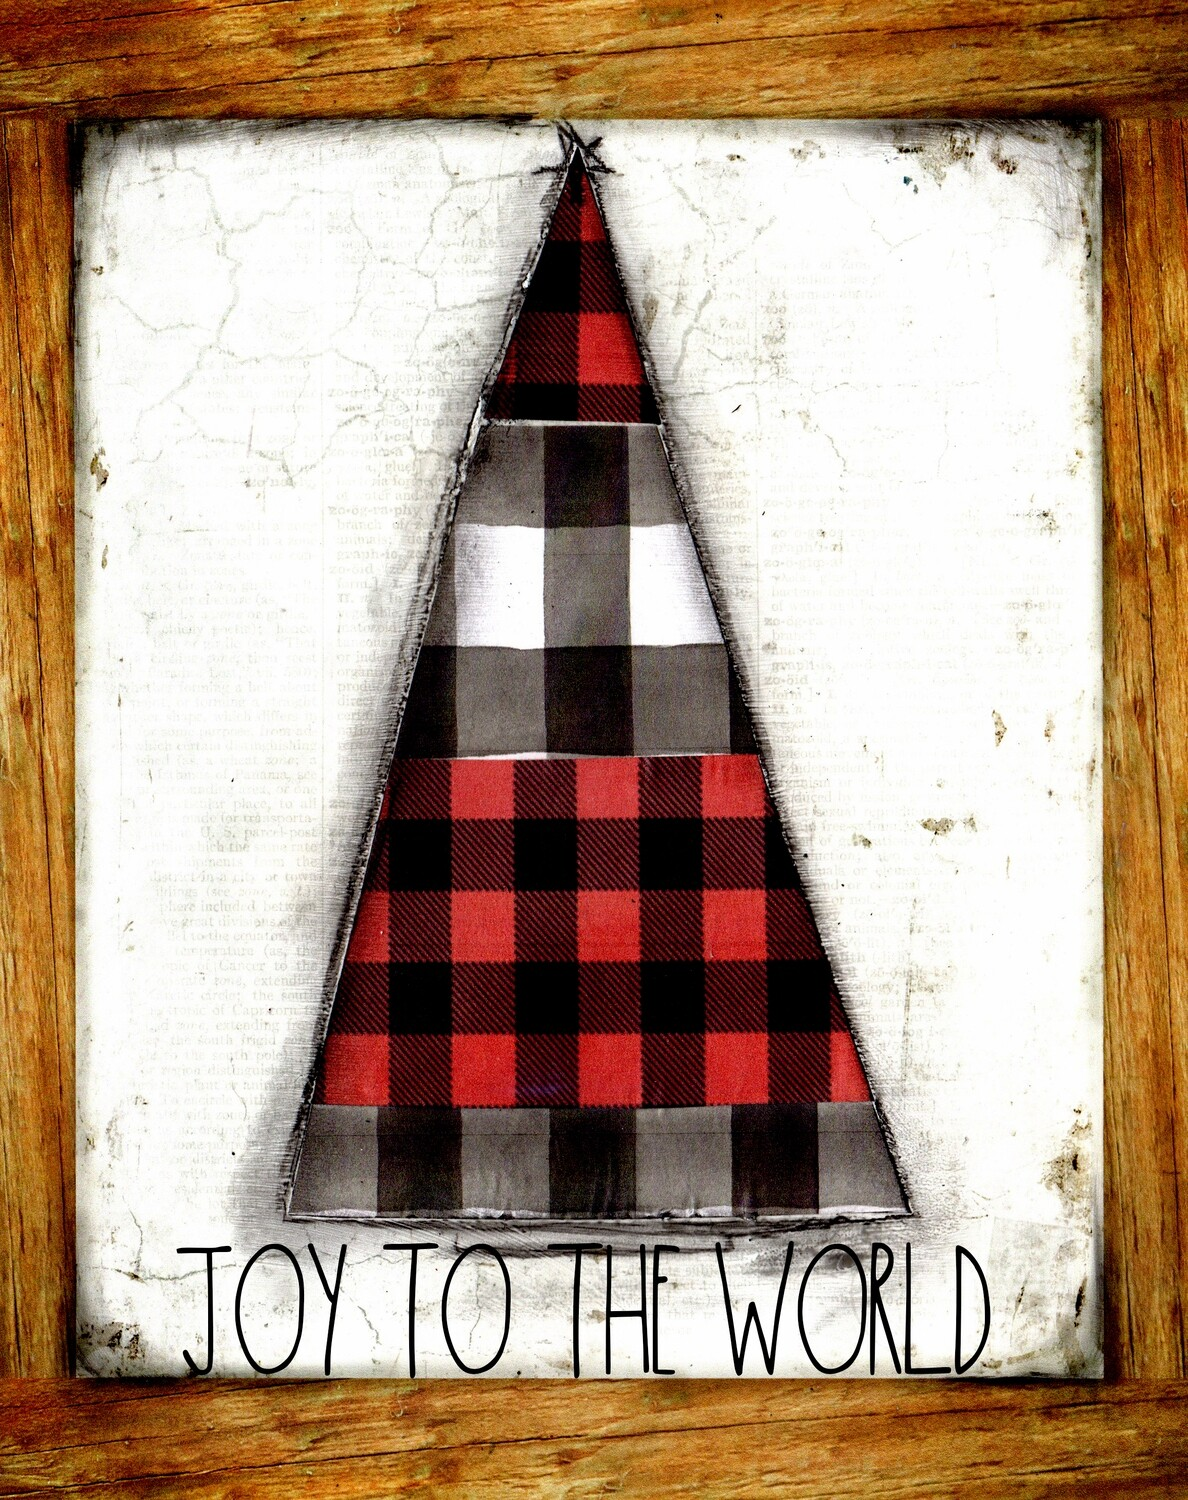 """""""Joy to the world"""" red, black and white plaid tree Print on Wood 5x7 Overstock"""